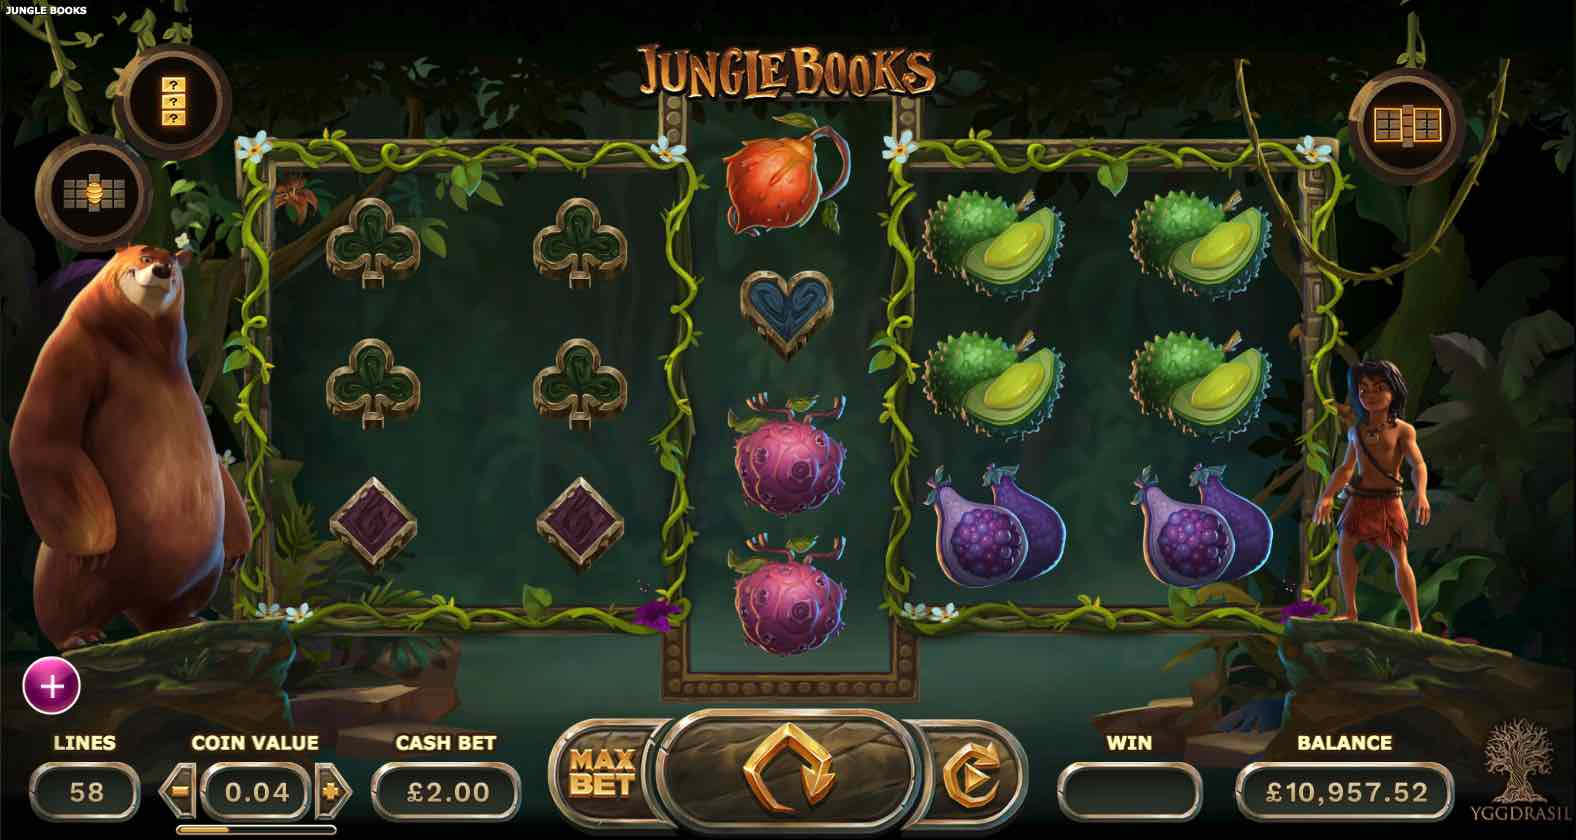 Jungle Books Gameplay